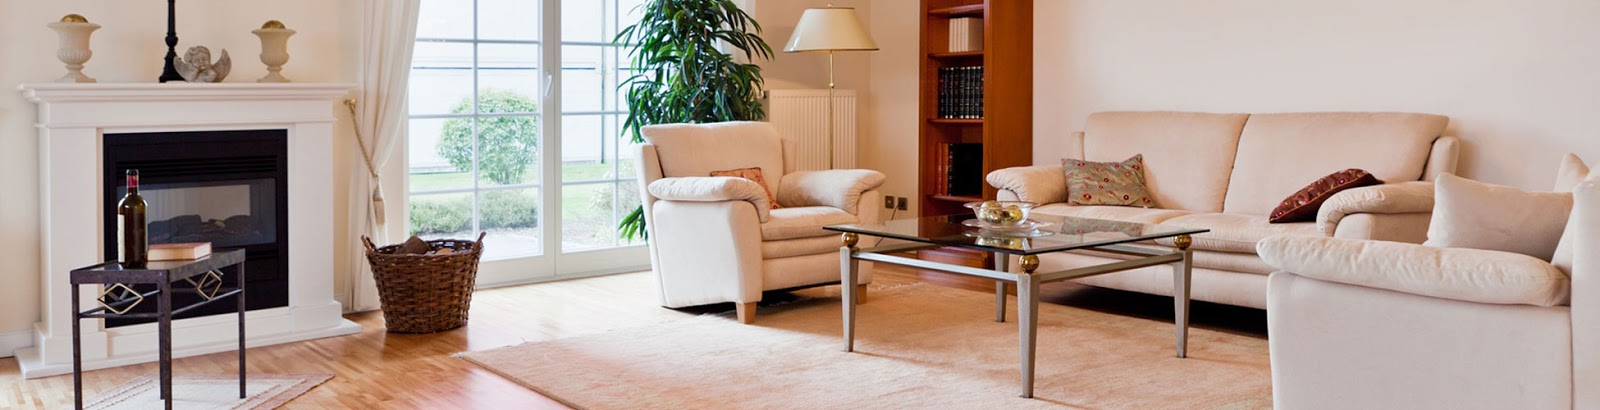 When Company Arrives, Your Living Room Is Often Where They Spend Most Of  Their Time. Even The Most Diligent House Cleaners Miss That Stray Crumb  Under A ...